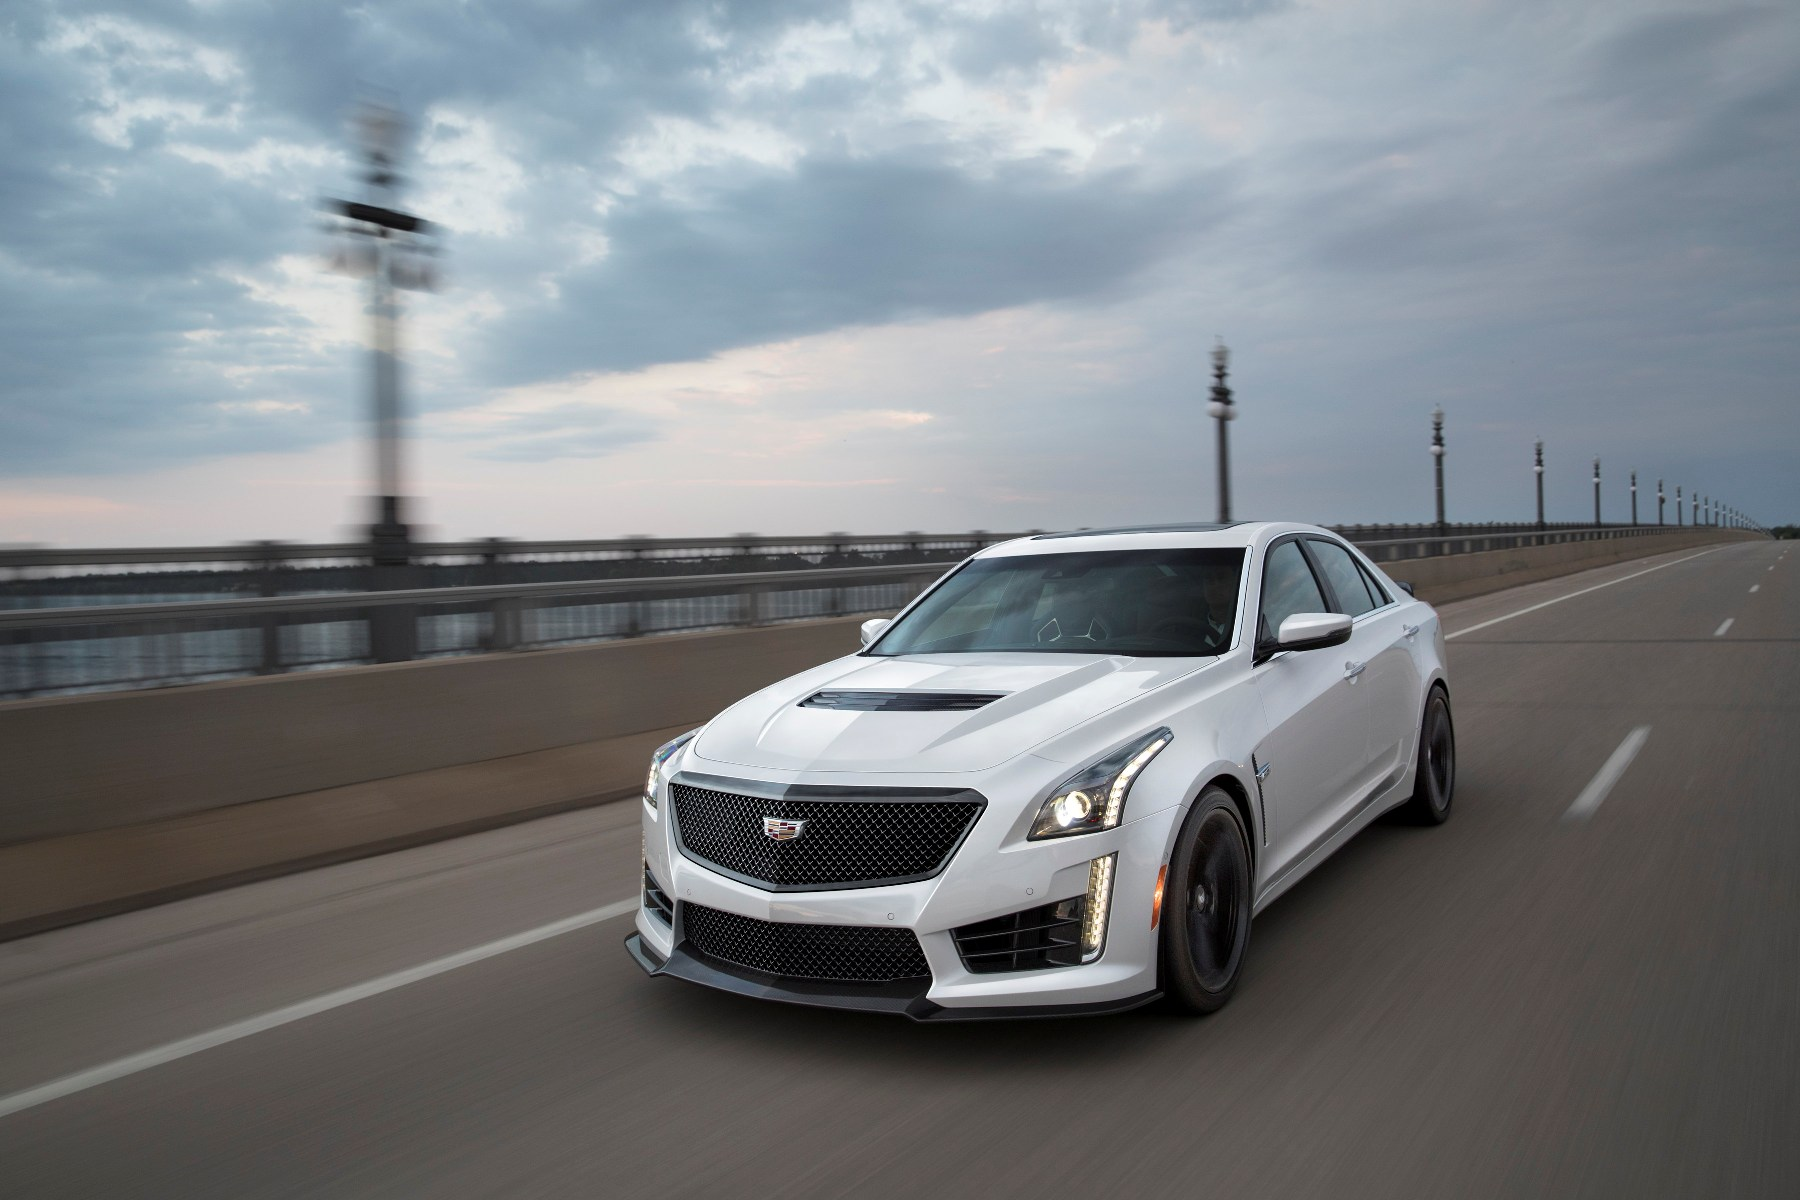 2018 cadillac cts v overview the news wheel. Black Bedroom Furniture Sets. Home Design Ideas